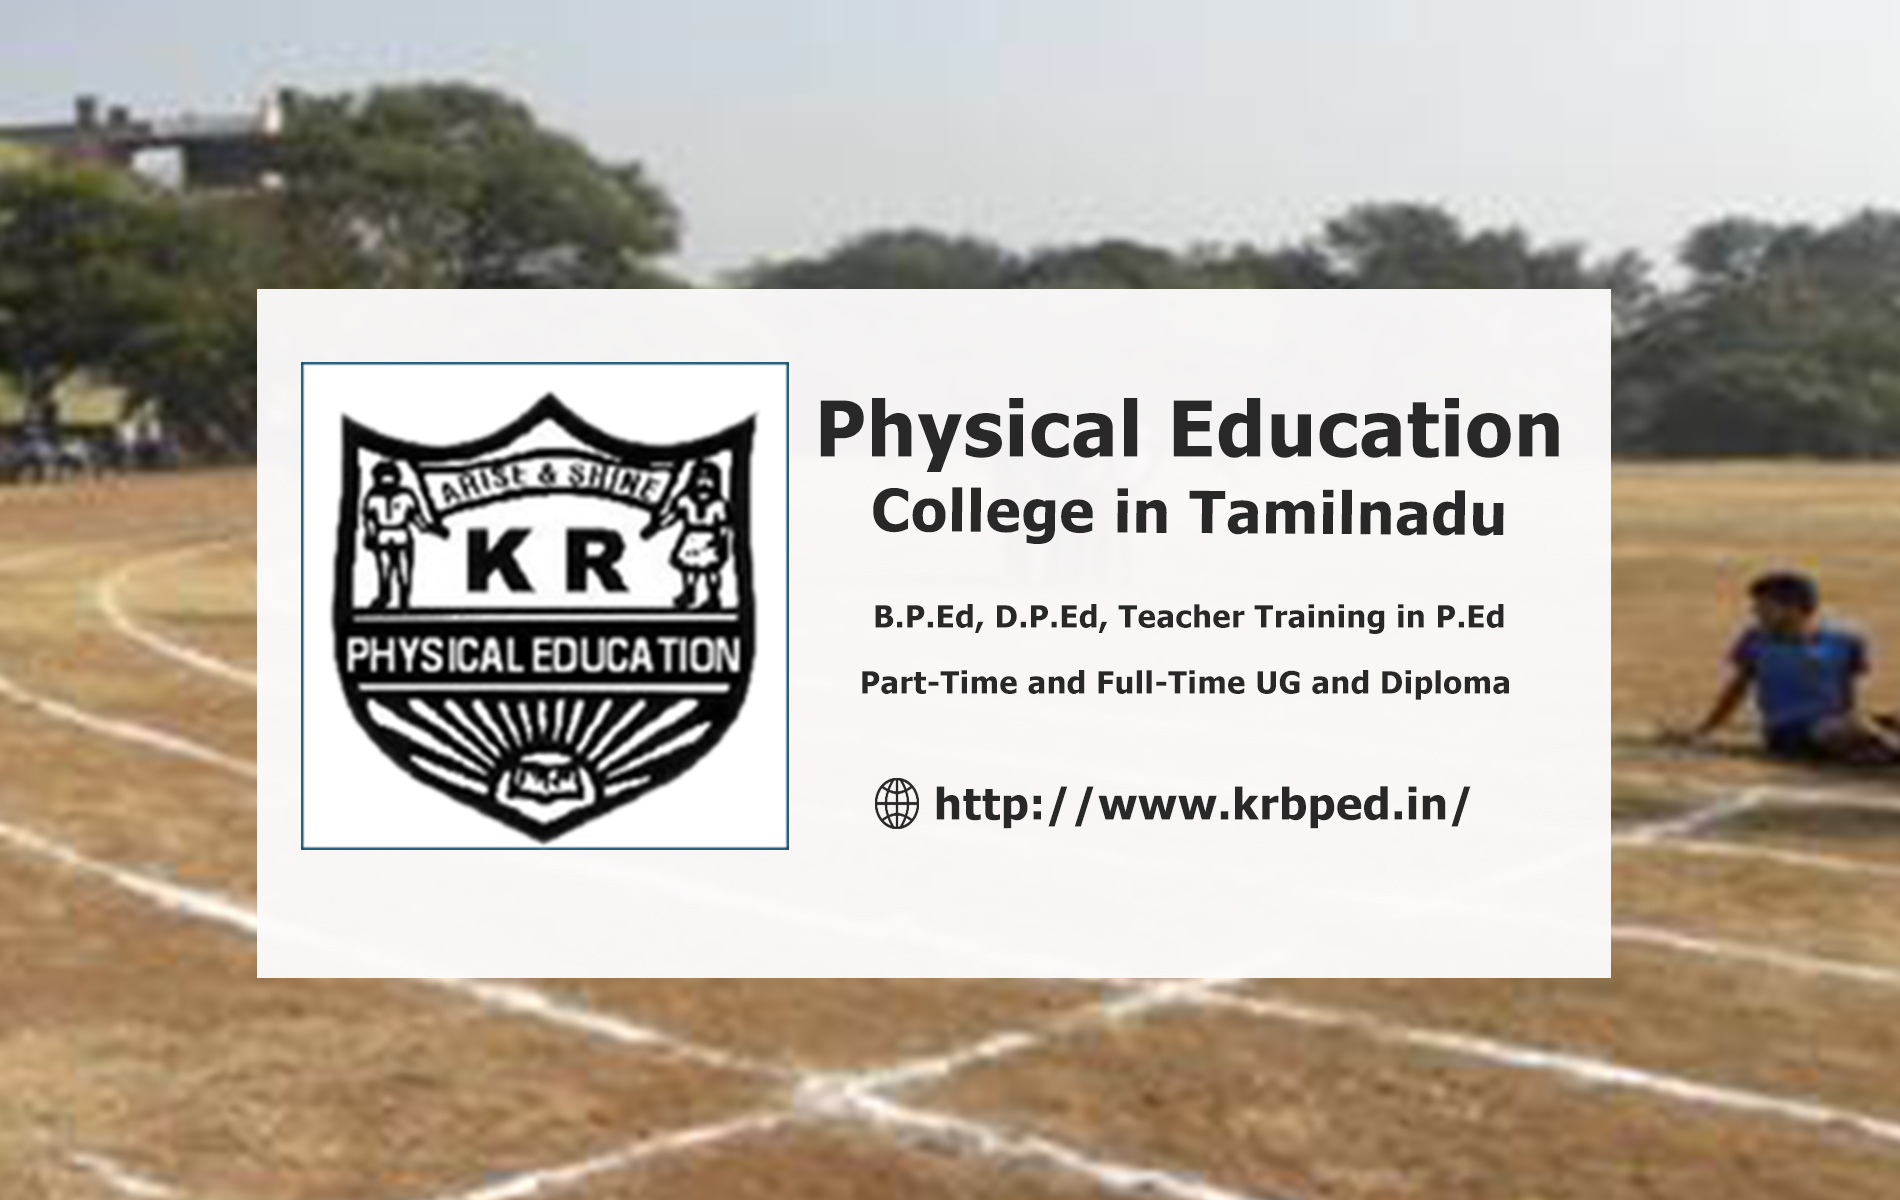 K.R College Of Physical Education